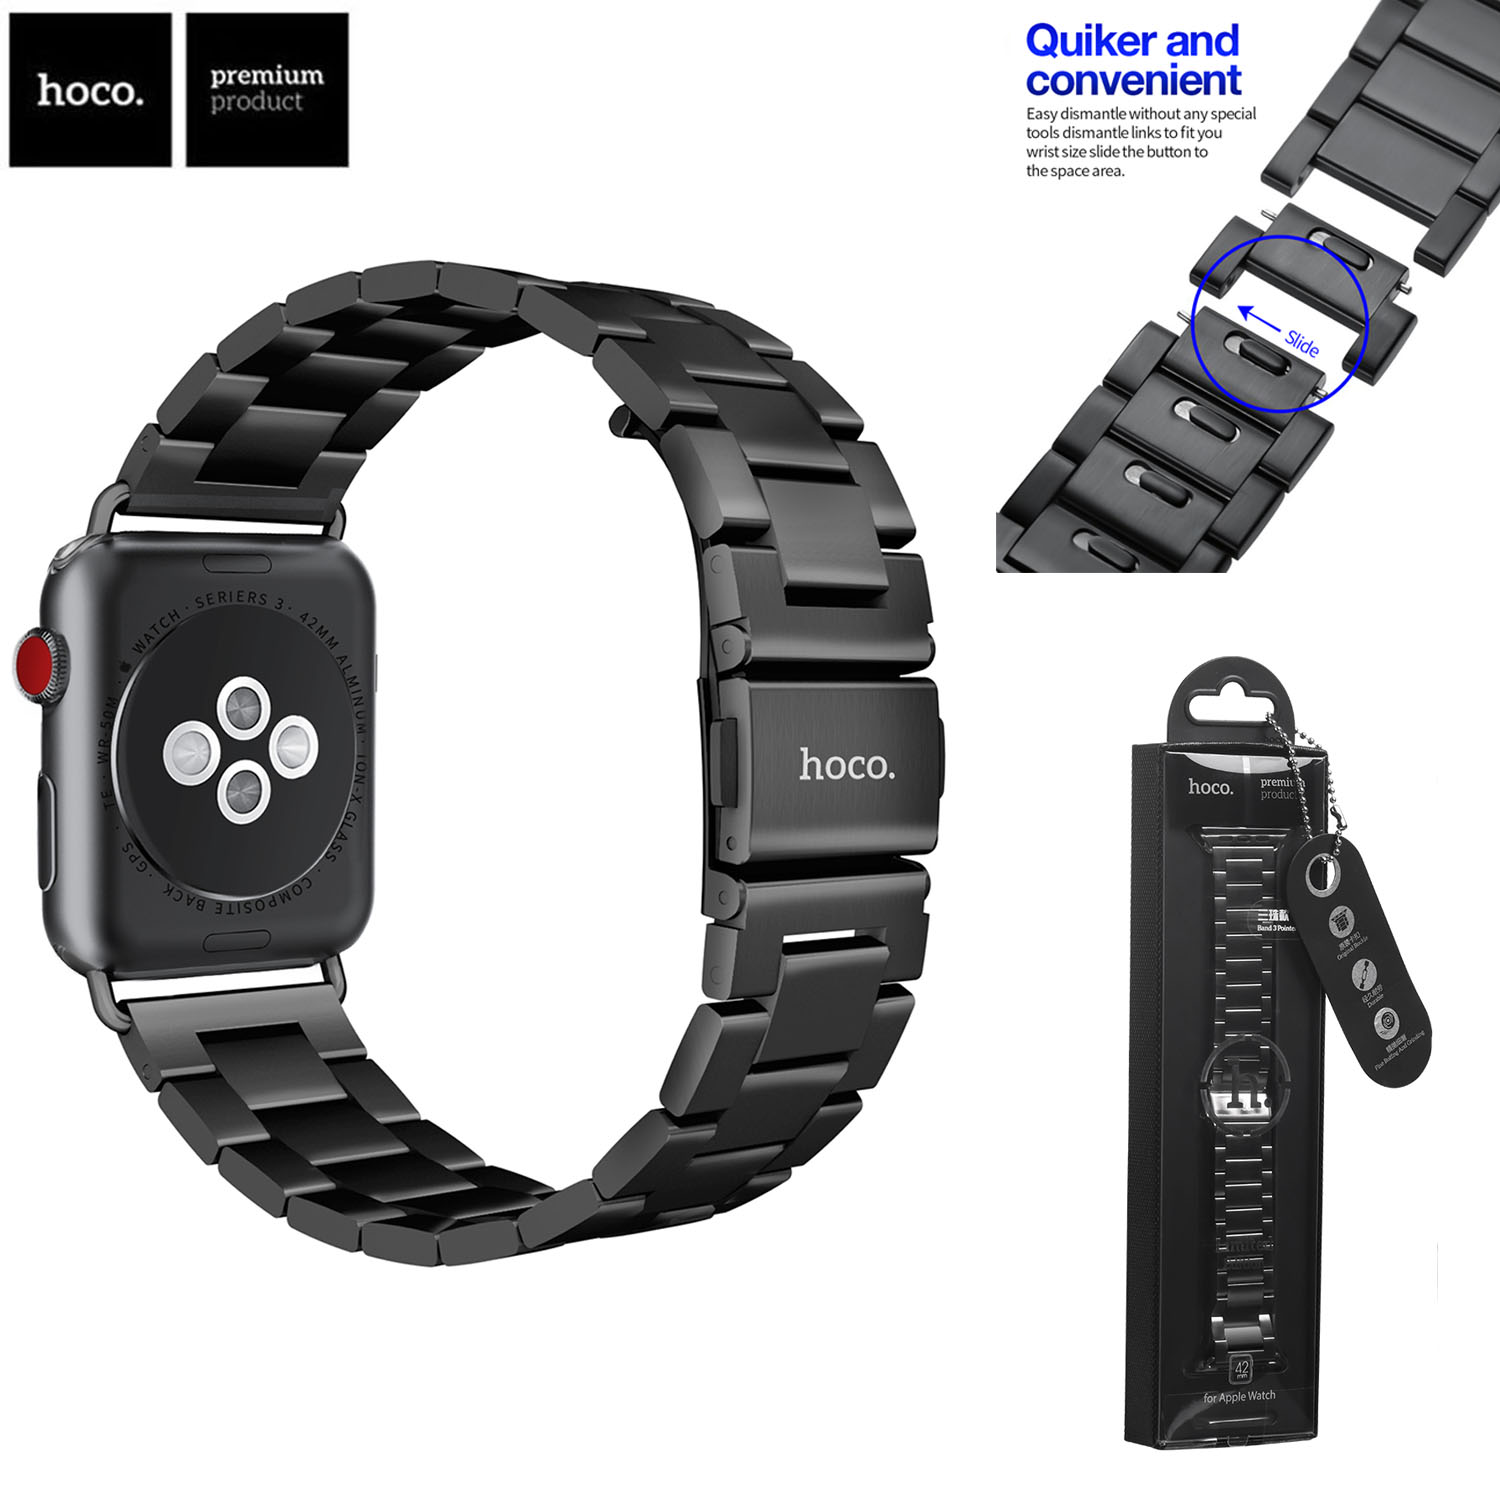 Original HOCO <font><b>Watch</b></font> Strap for <font><b>Apple</b></font> <font><b>Watch</b></font> Band Series 1 2 <font><b>3</b></font> 4 Stainless Steel Metal Watchbands for iWatch 38mm <font><b>42mm</b></font> 40mm 44mm image